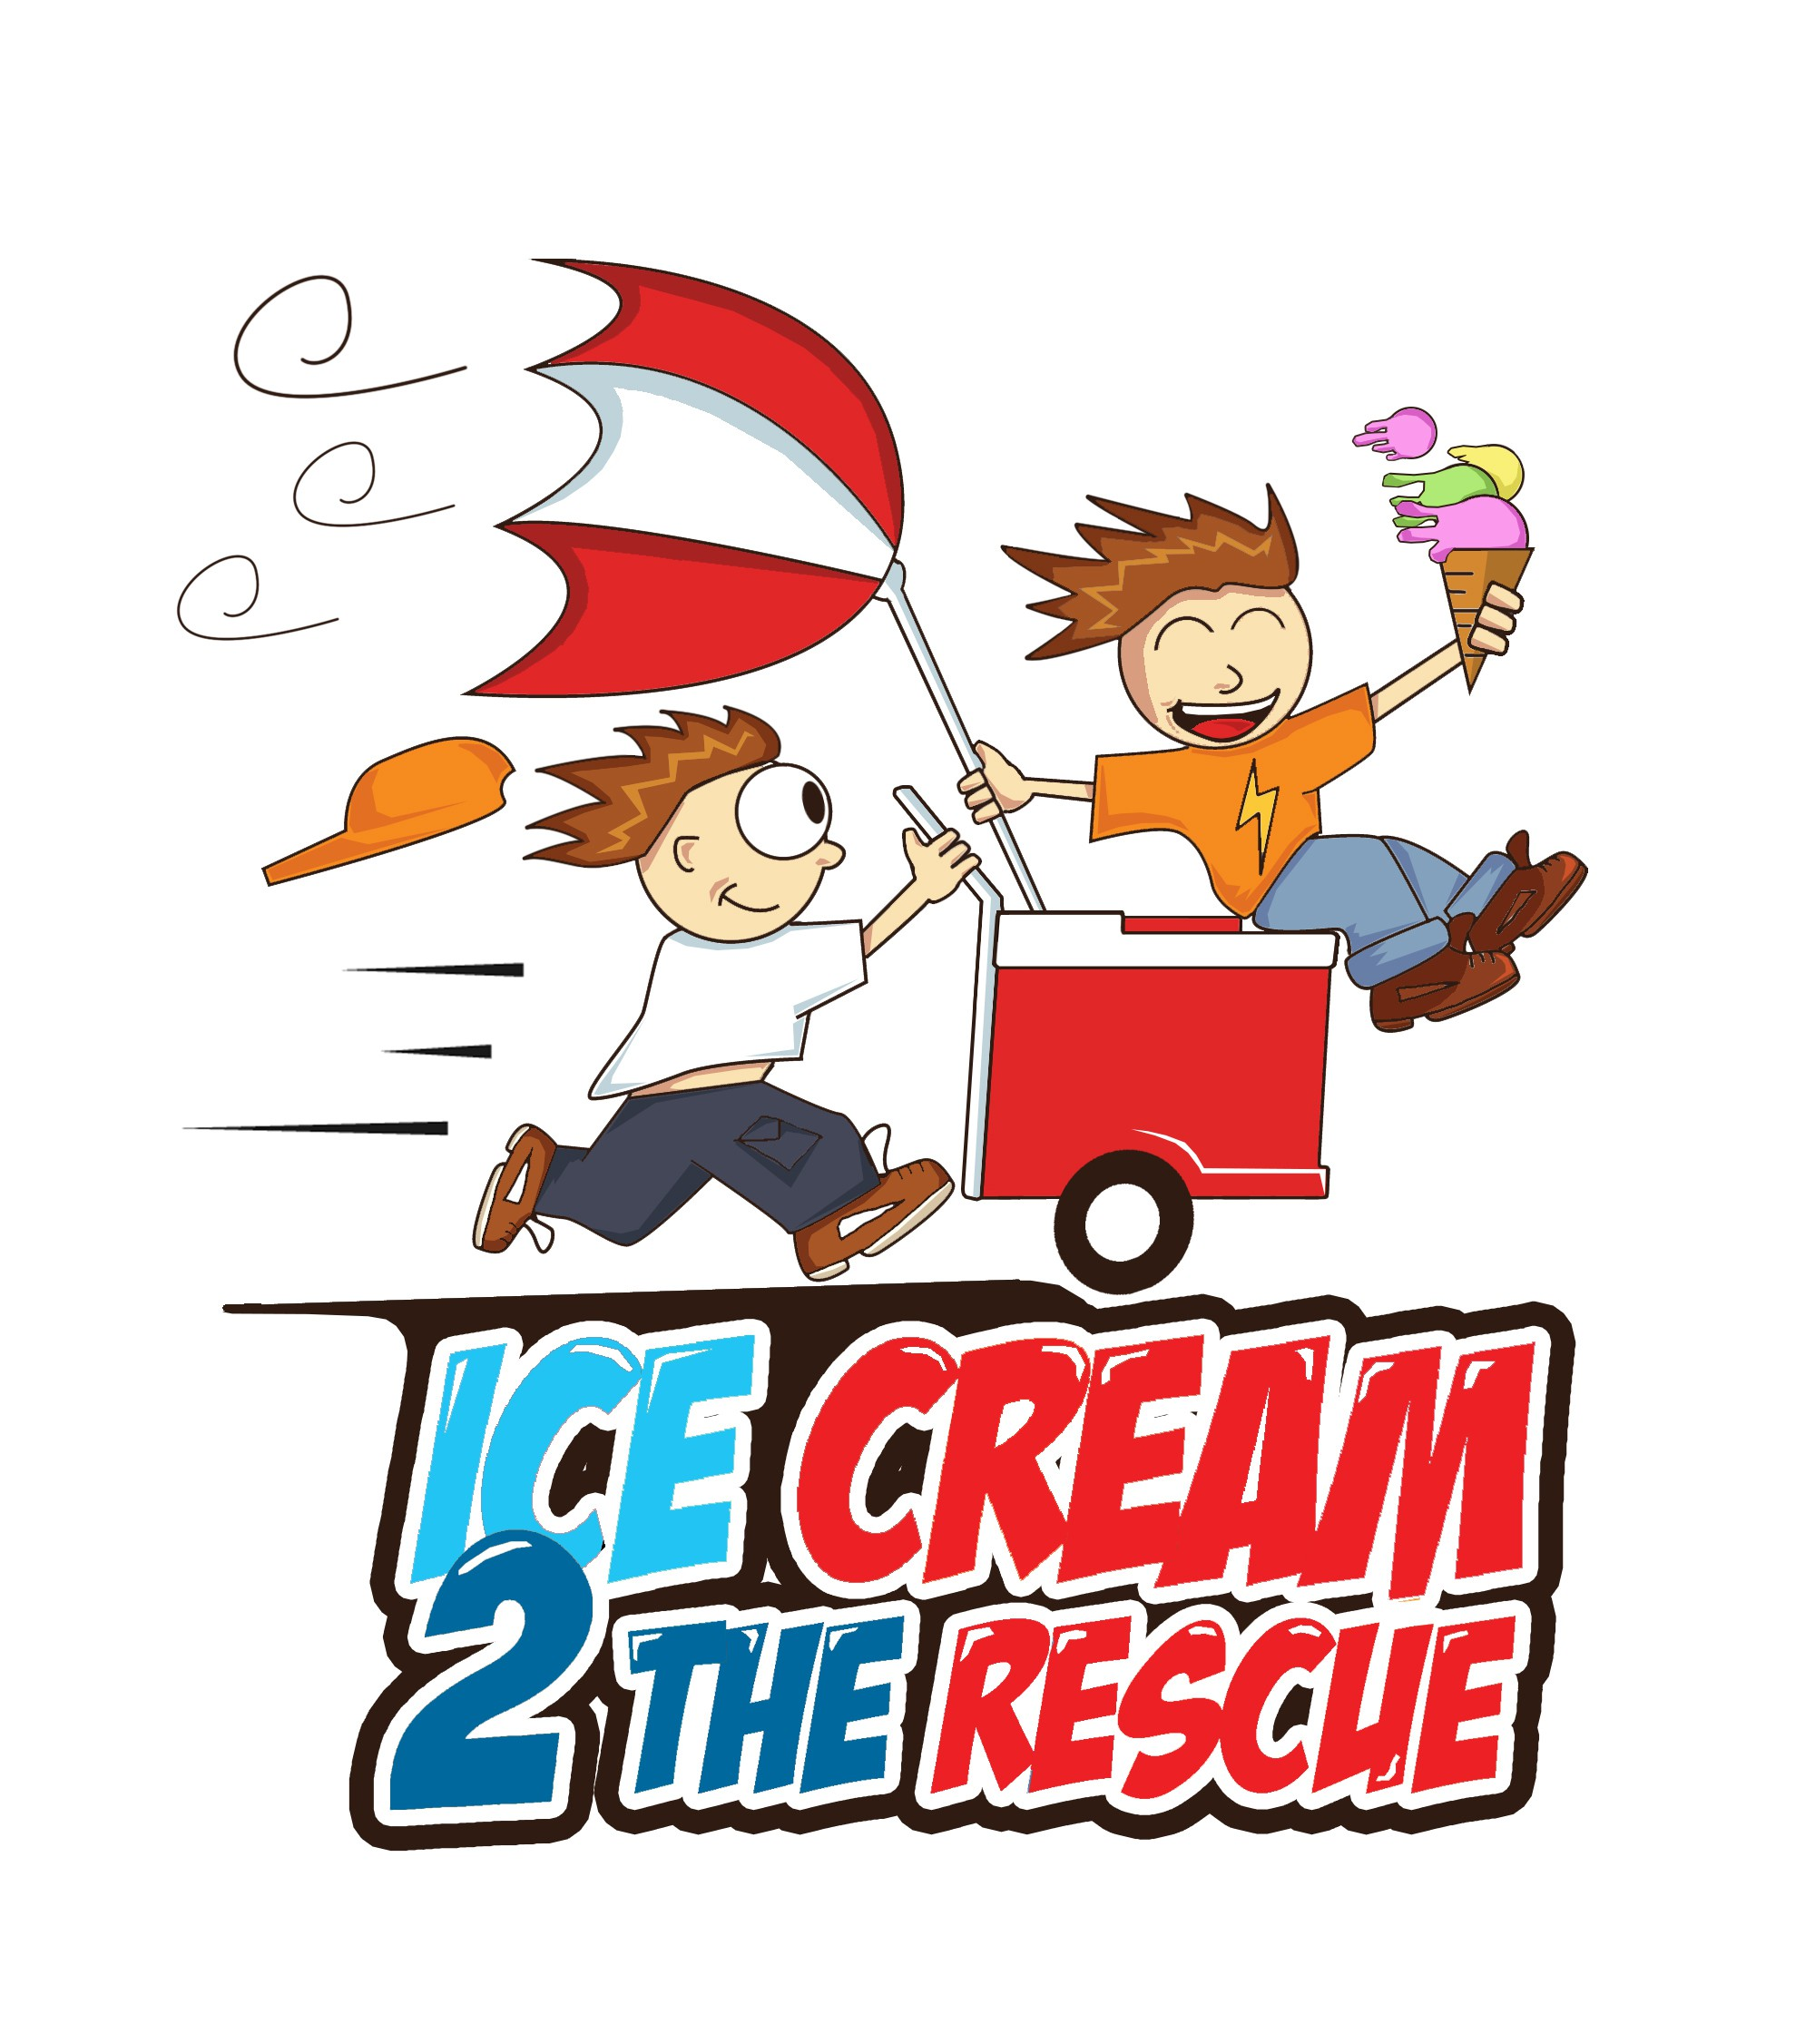 Kids Ice Cream Push Cart Business Helping Teach Other Kids Math & Business Skills